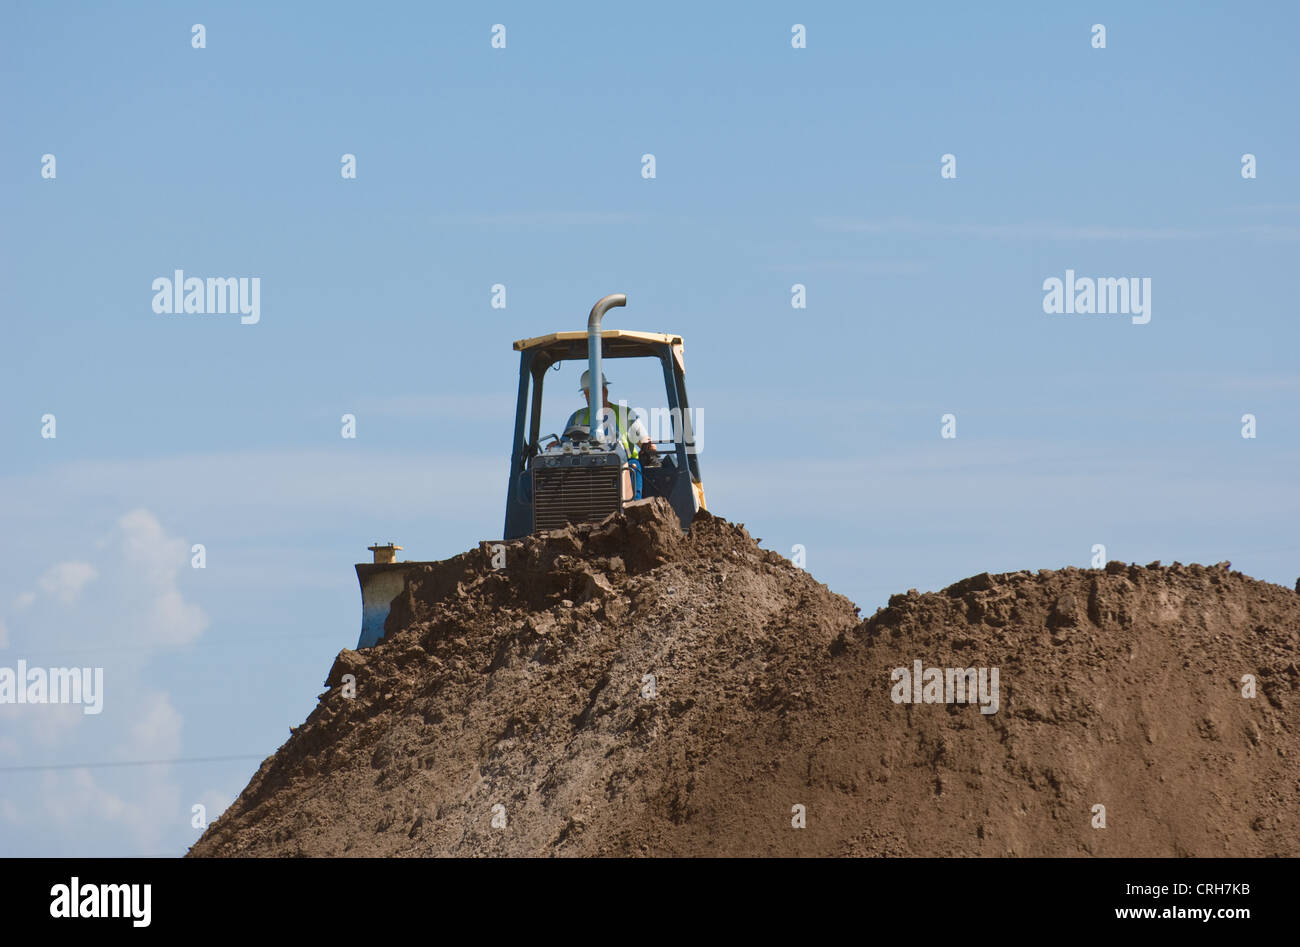 Bulldozer on top of dirt pile at construction site - Stock Image